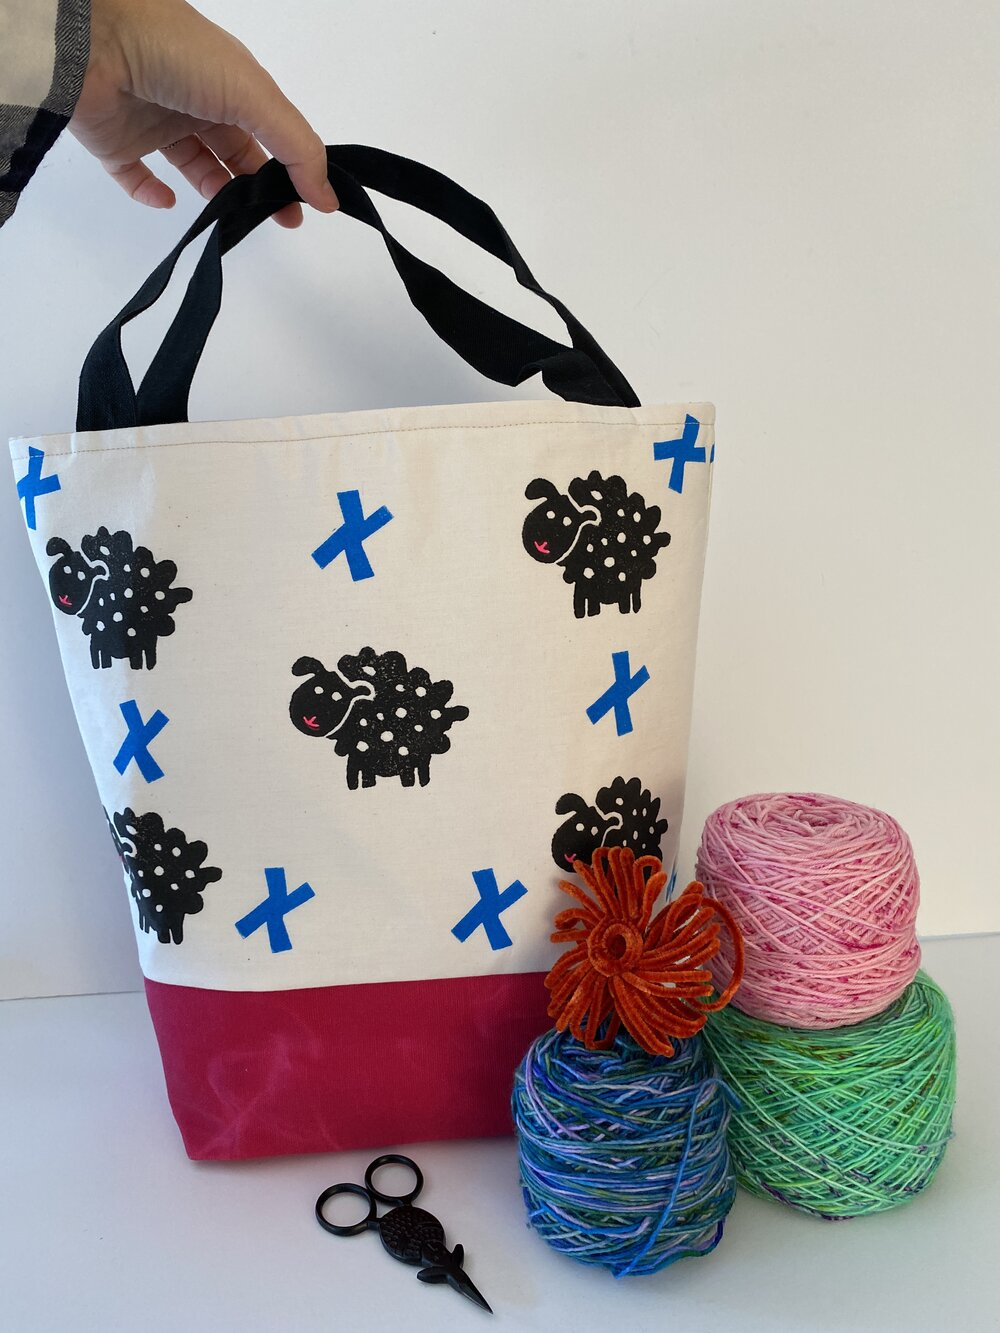 Tote - S - Sheepies and crosses